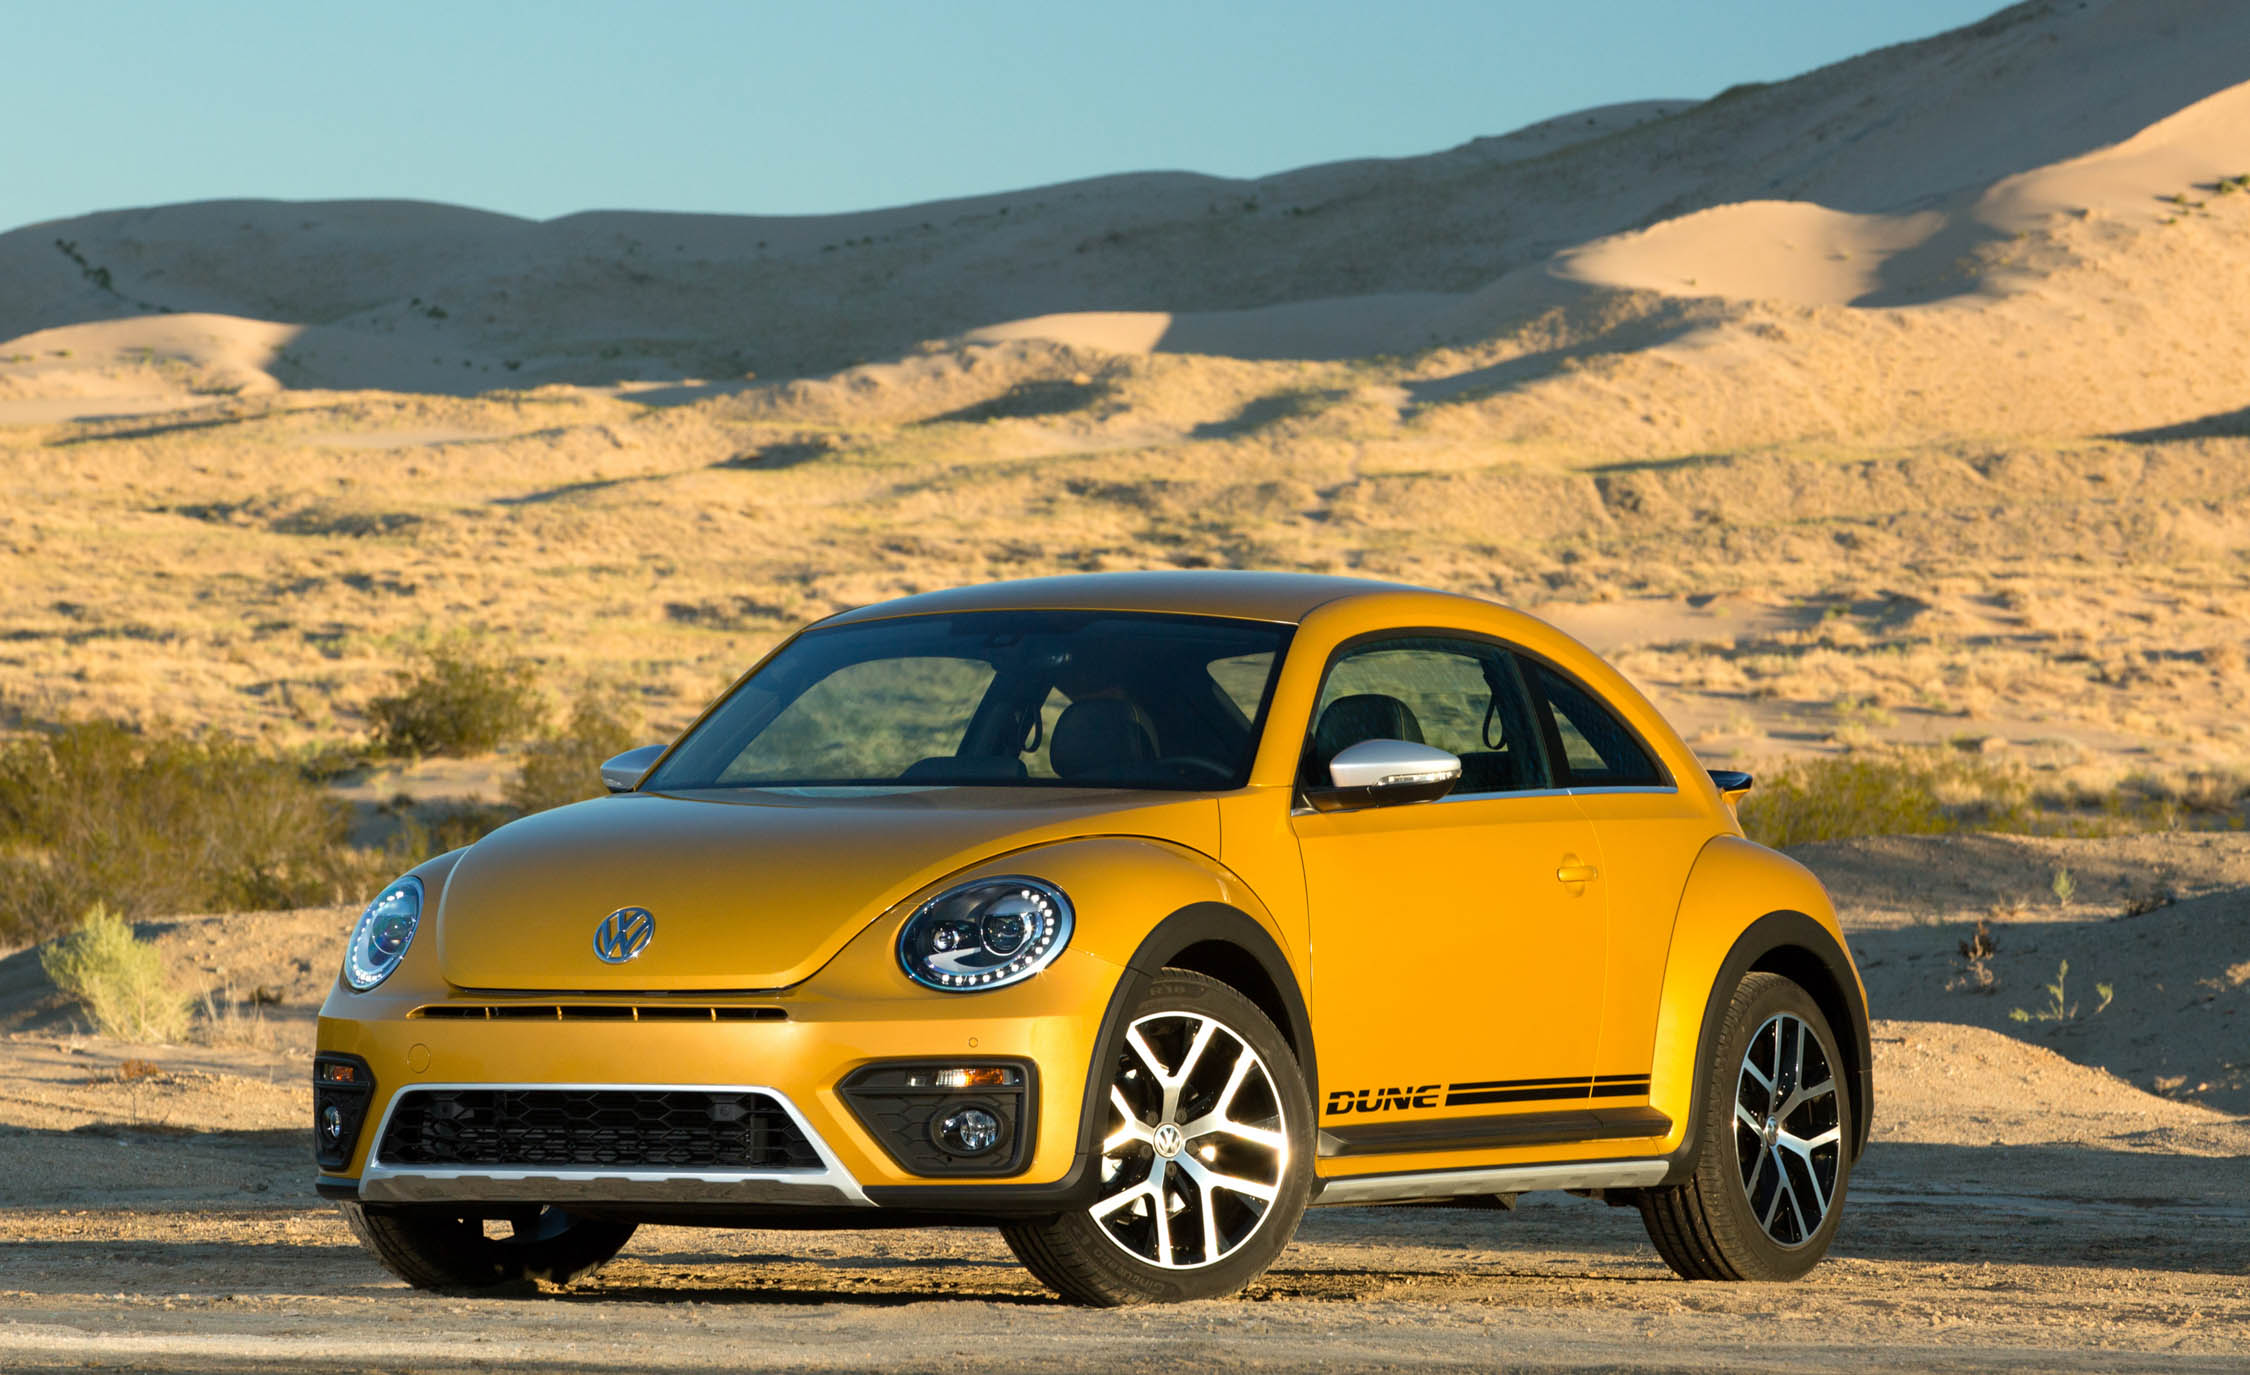 2016 Volkswagen Beetle Dune Exterior Full Front and Side